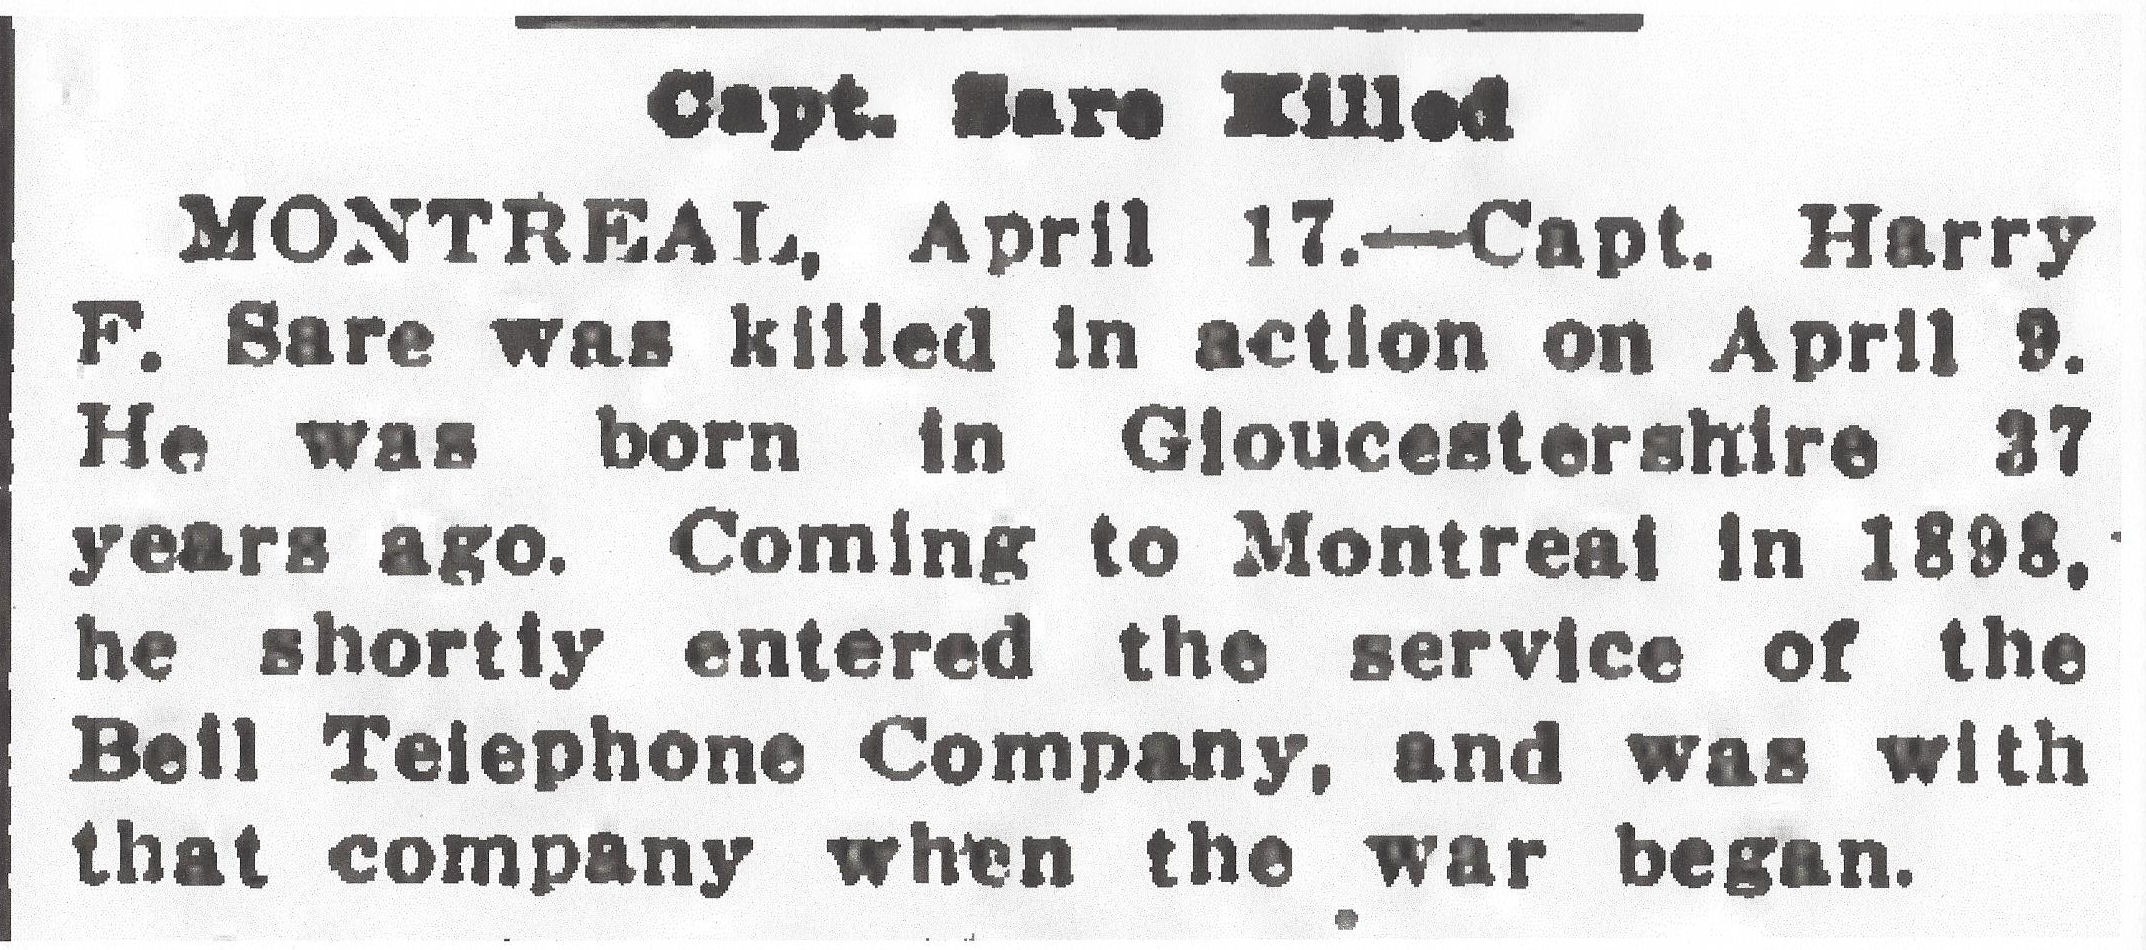 Newspaper clipping– From the Daily Colonist of April 18, 1917. Image taken from web address of http://archive.org/stream/dailycolonist59y111uvic#page/n0/mode/1up